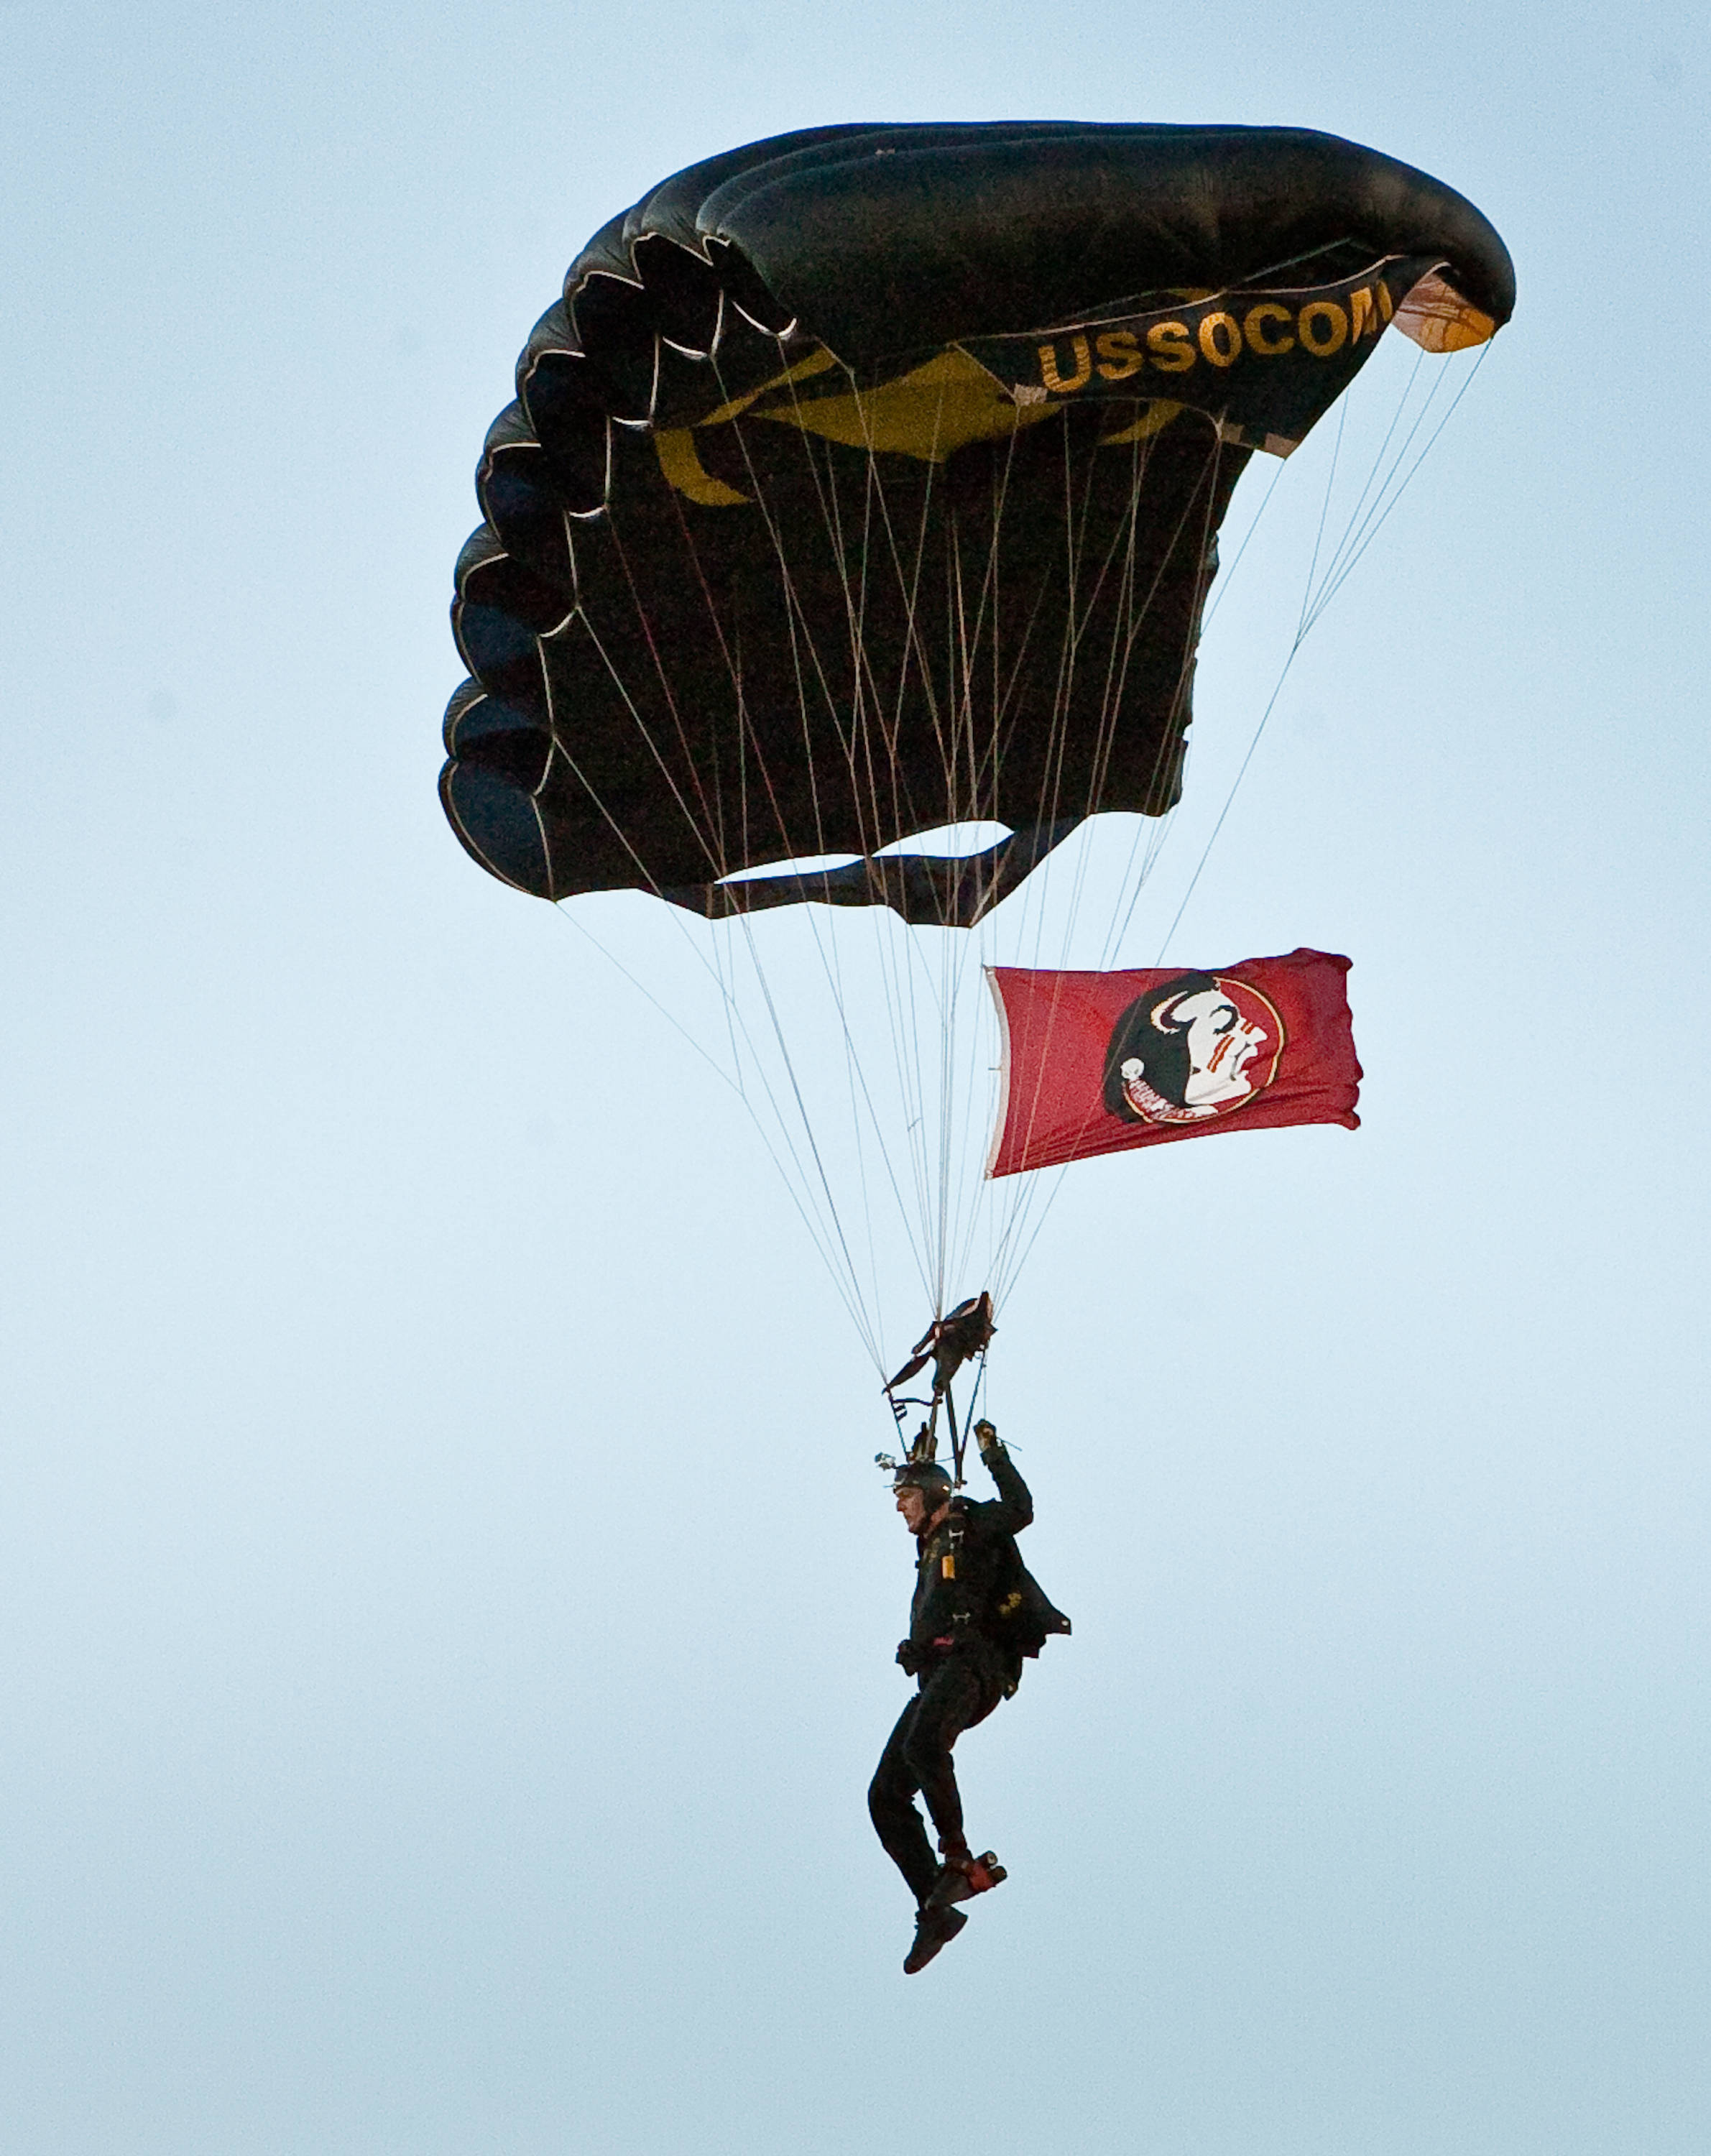 A paratrooper with the Florida State flag drops in on the Citrus Bowl before the Champs Sports Bowl.